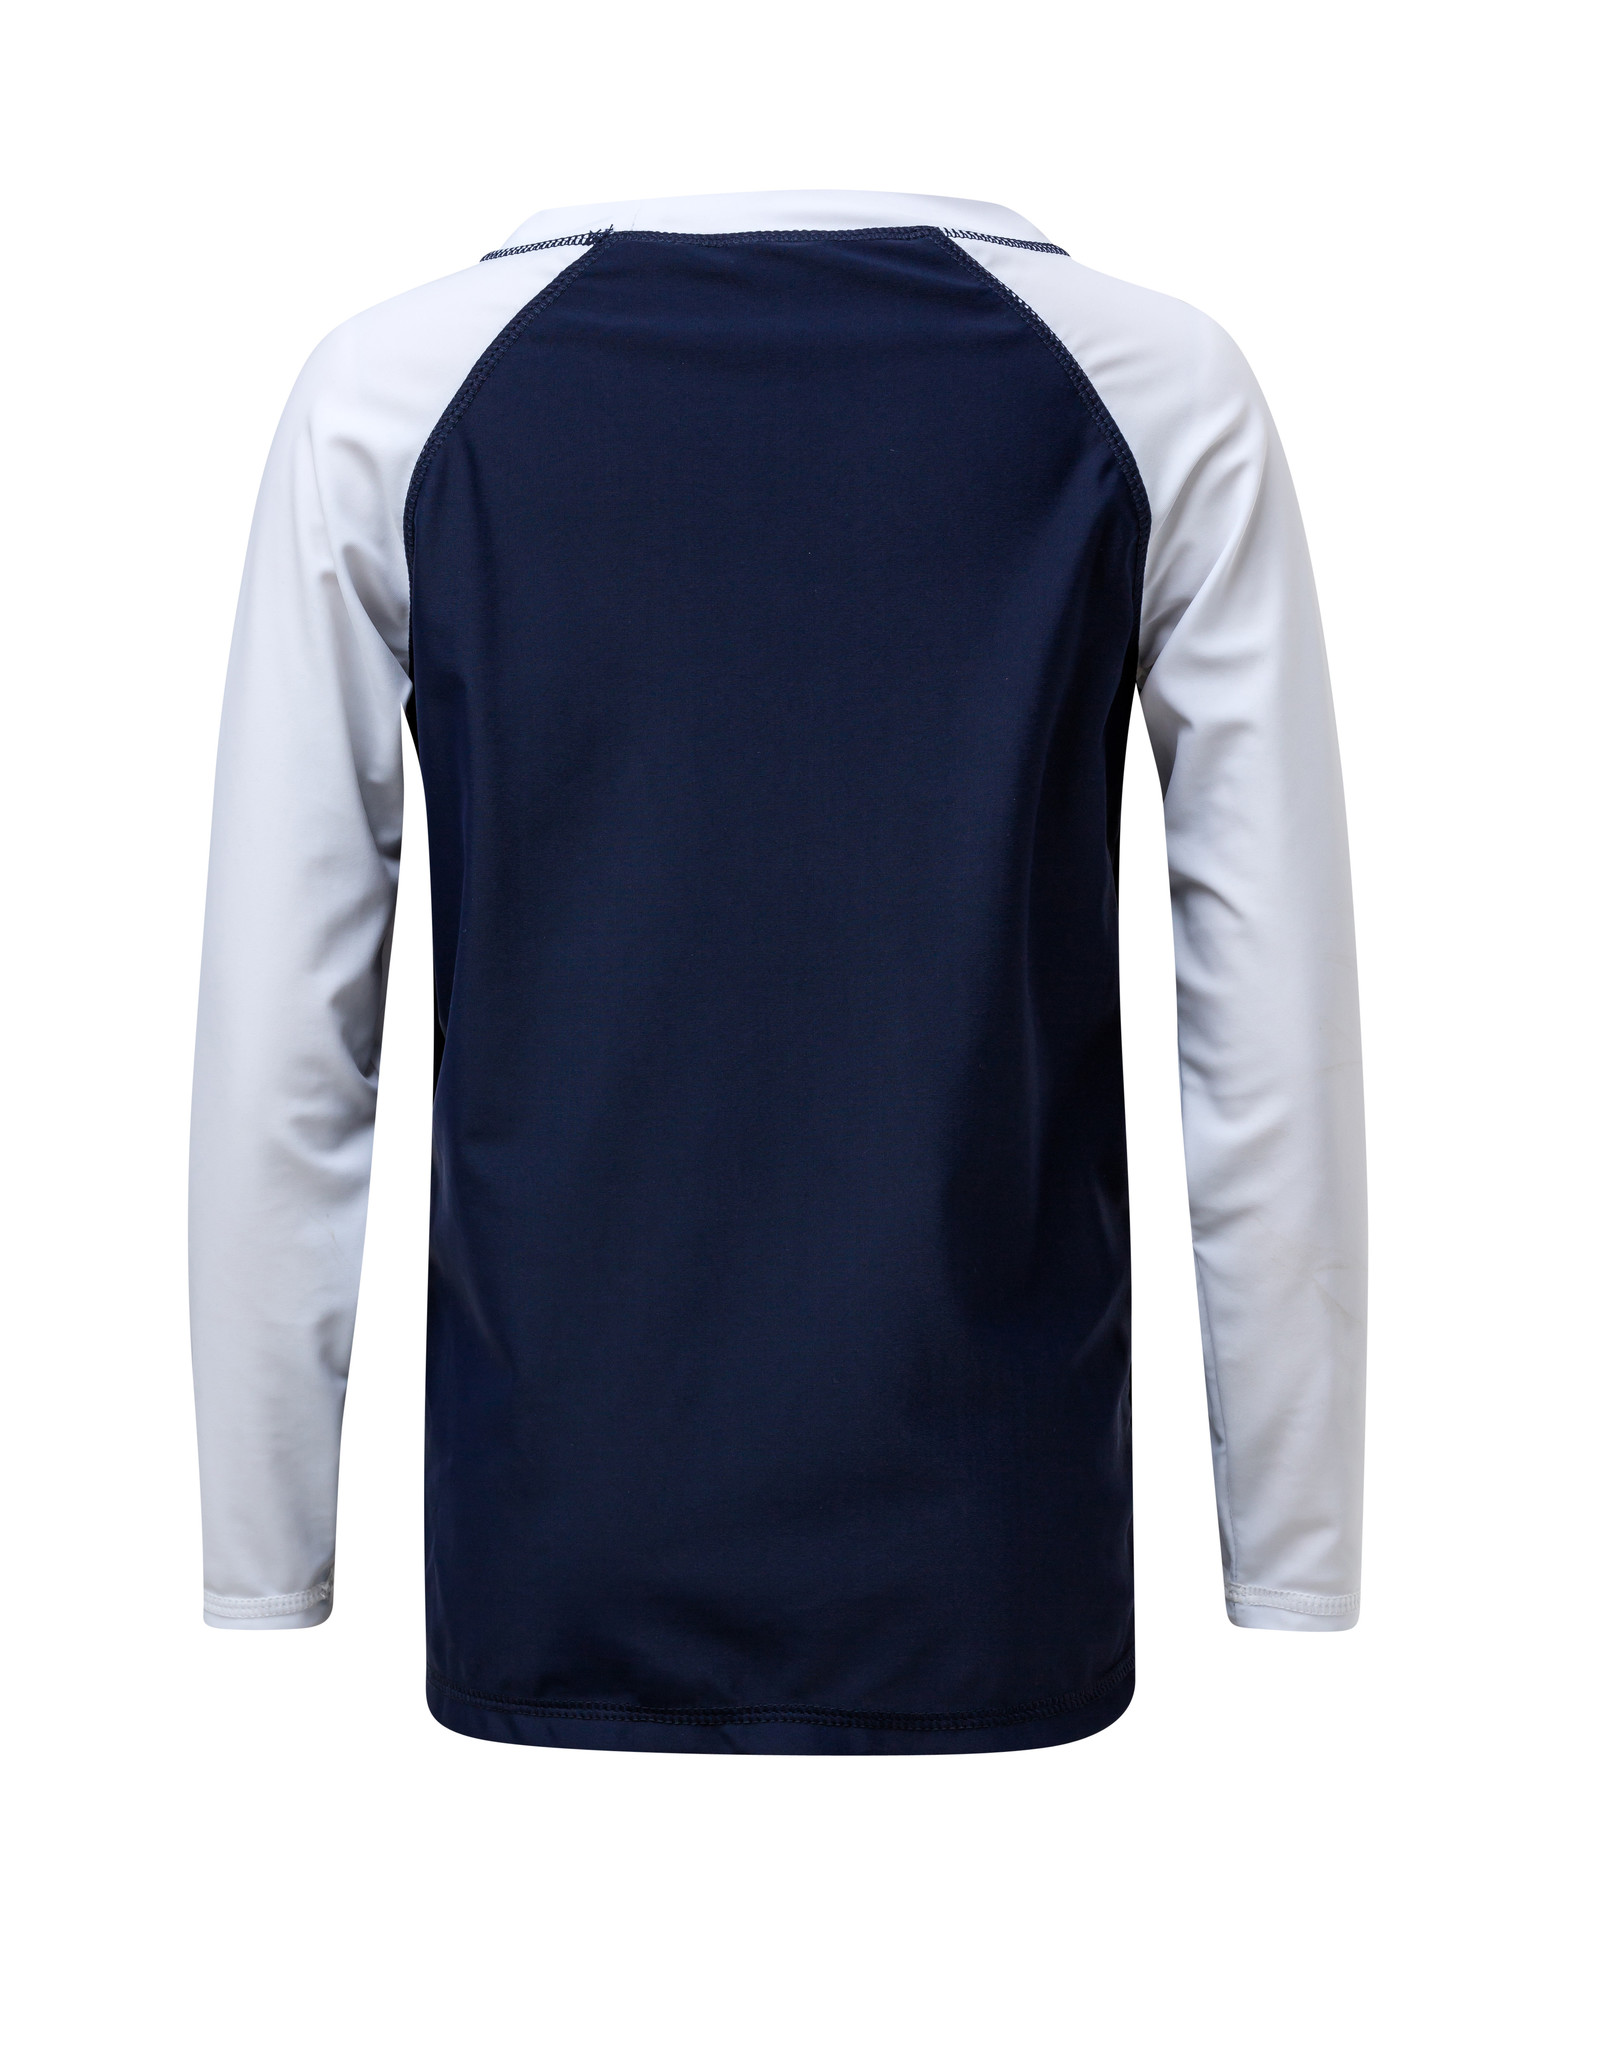 BOARDS LONGSLEEVE RASH TOP